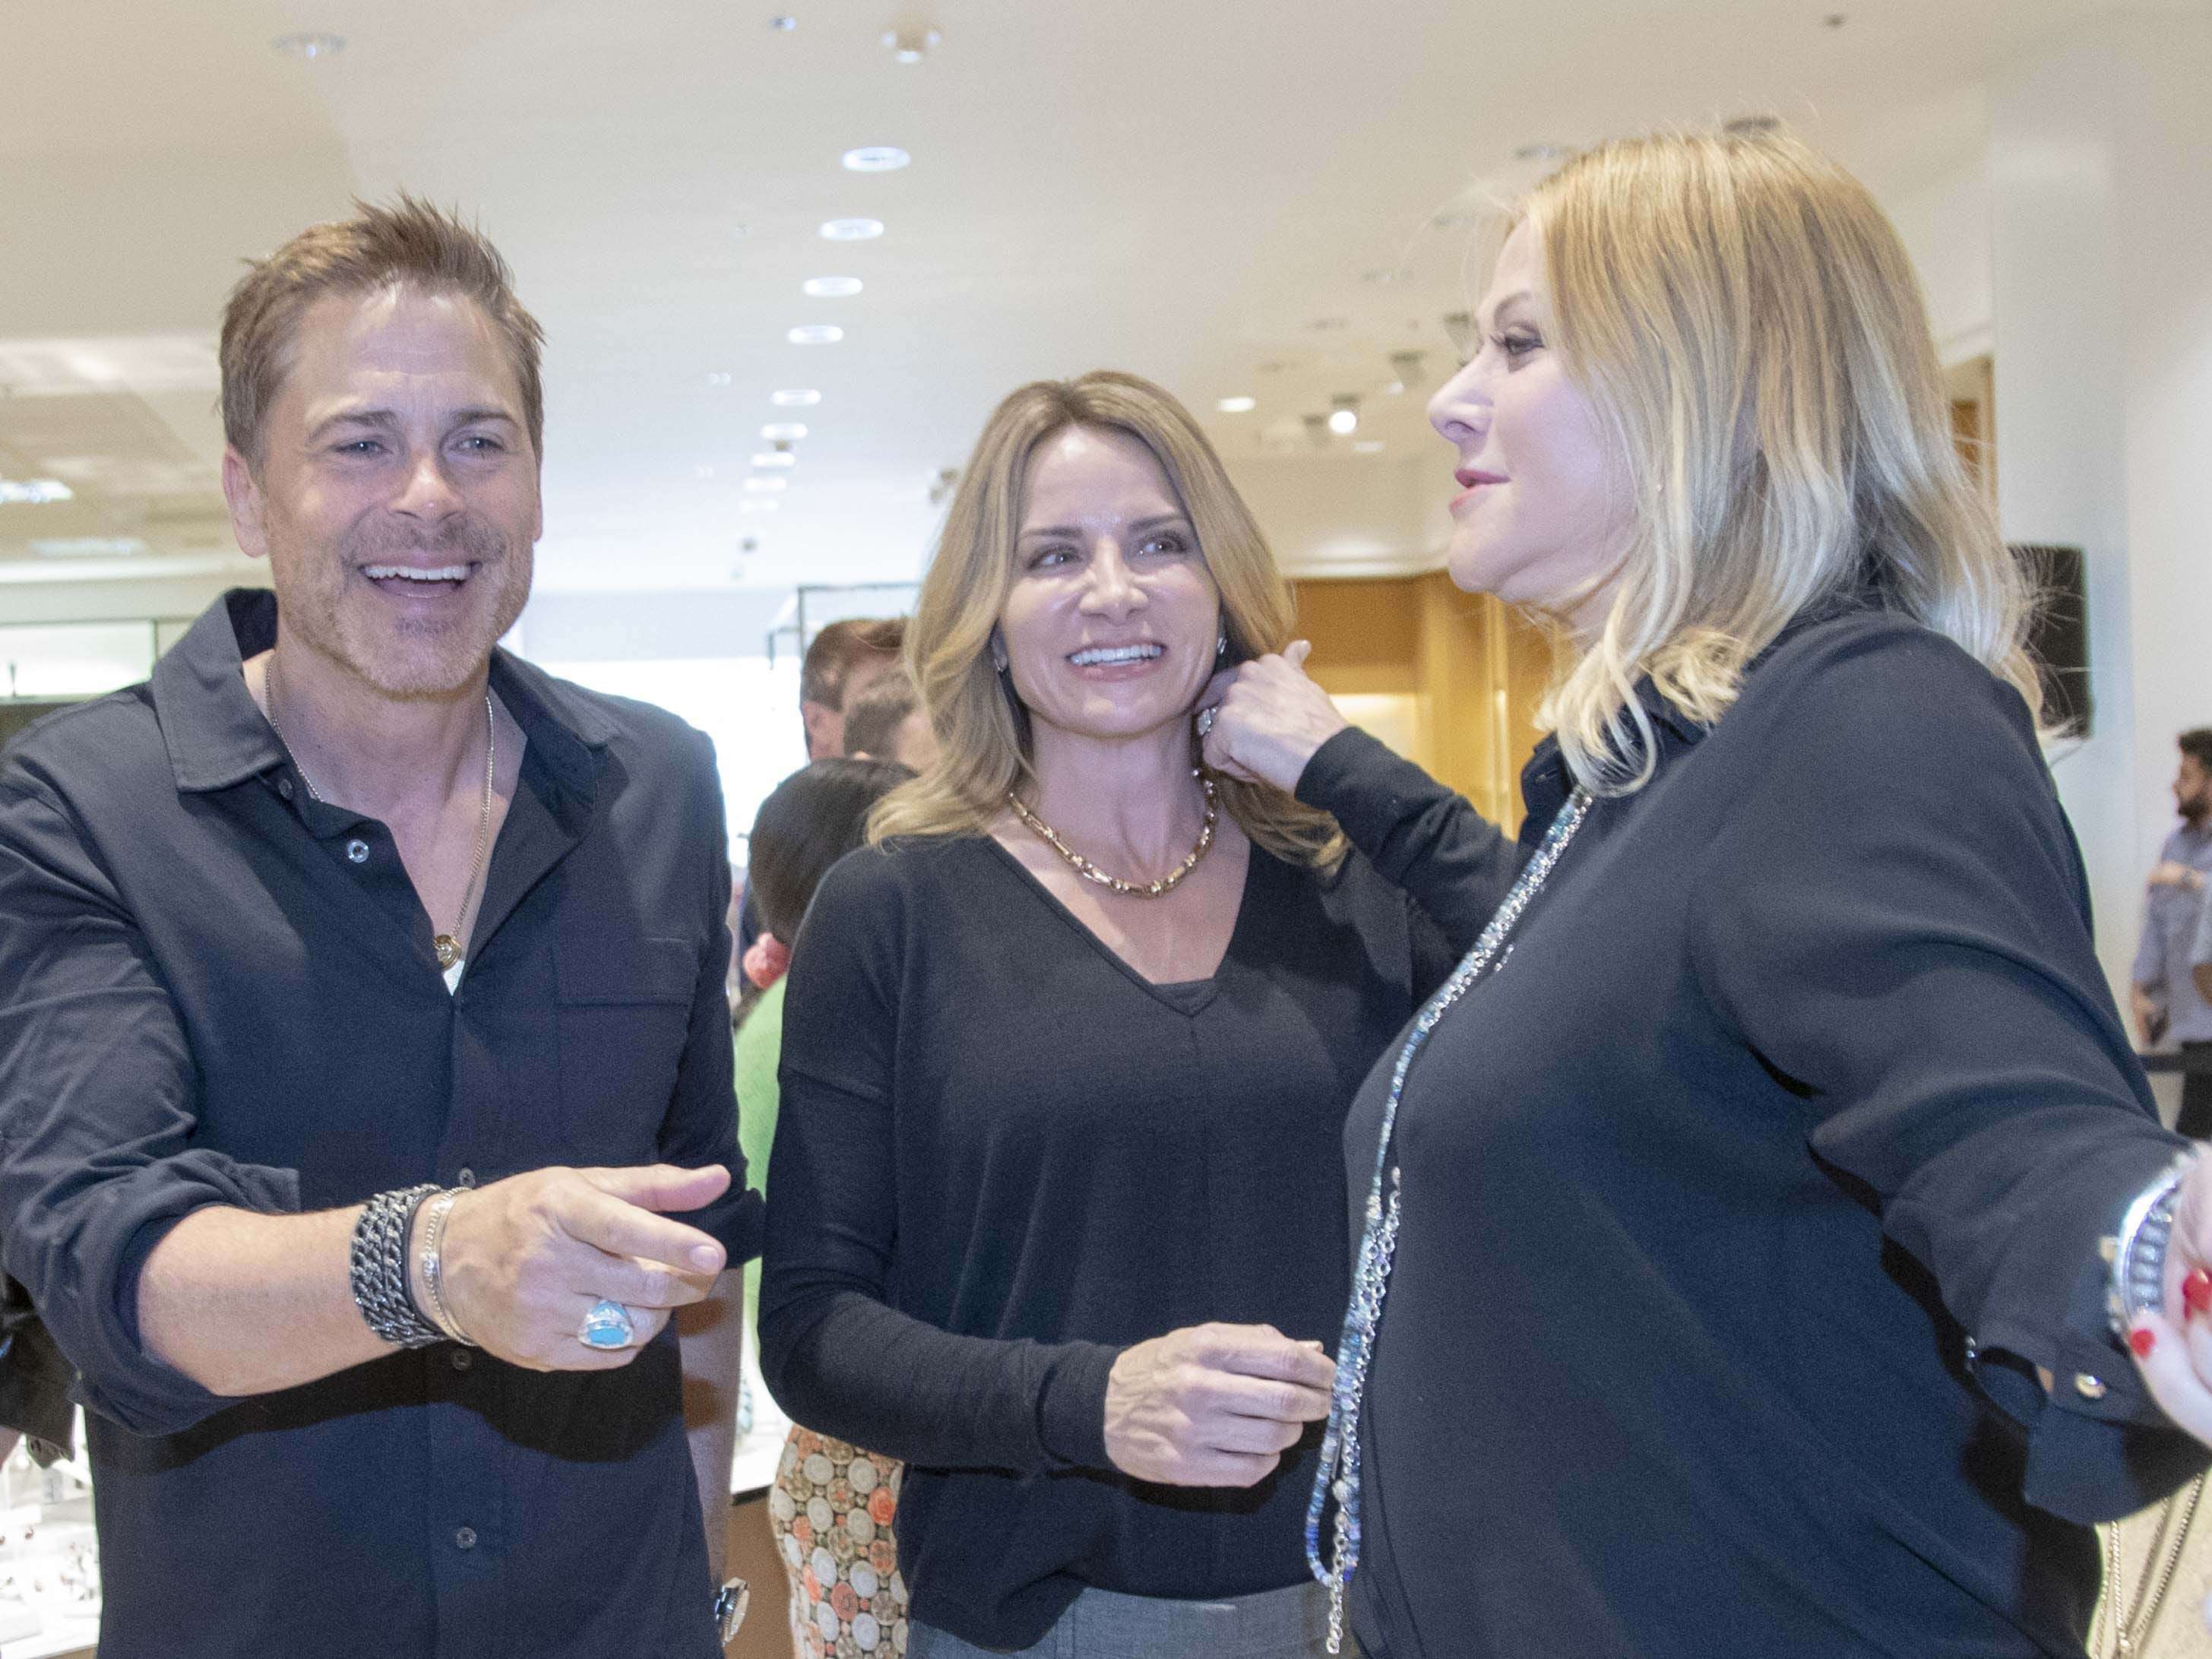 Actor Rob Lowe, on left and his jewelry-designer wife Sheryl Lowe, on far right, introduce their new men's jewelry collection exclusively to Neiman Marcus at Scottsdale Fashion Square on March 28, 2019.